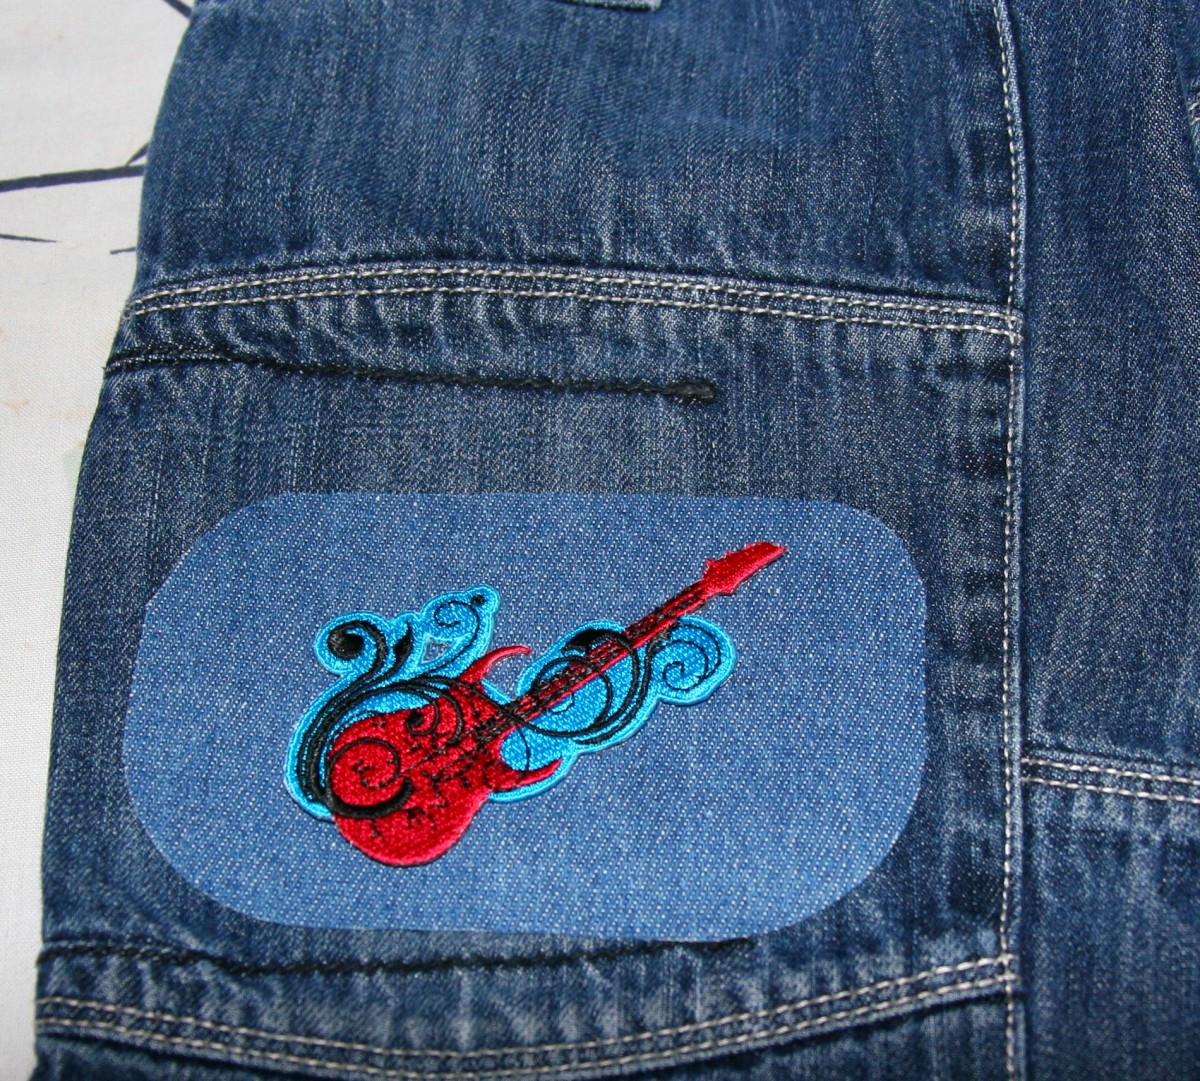 Adding an applique to the patch.